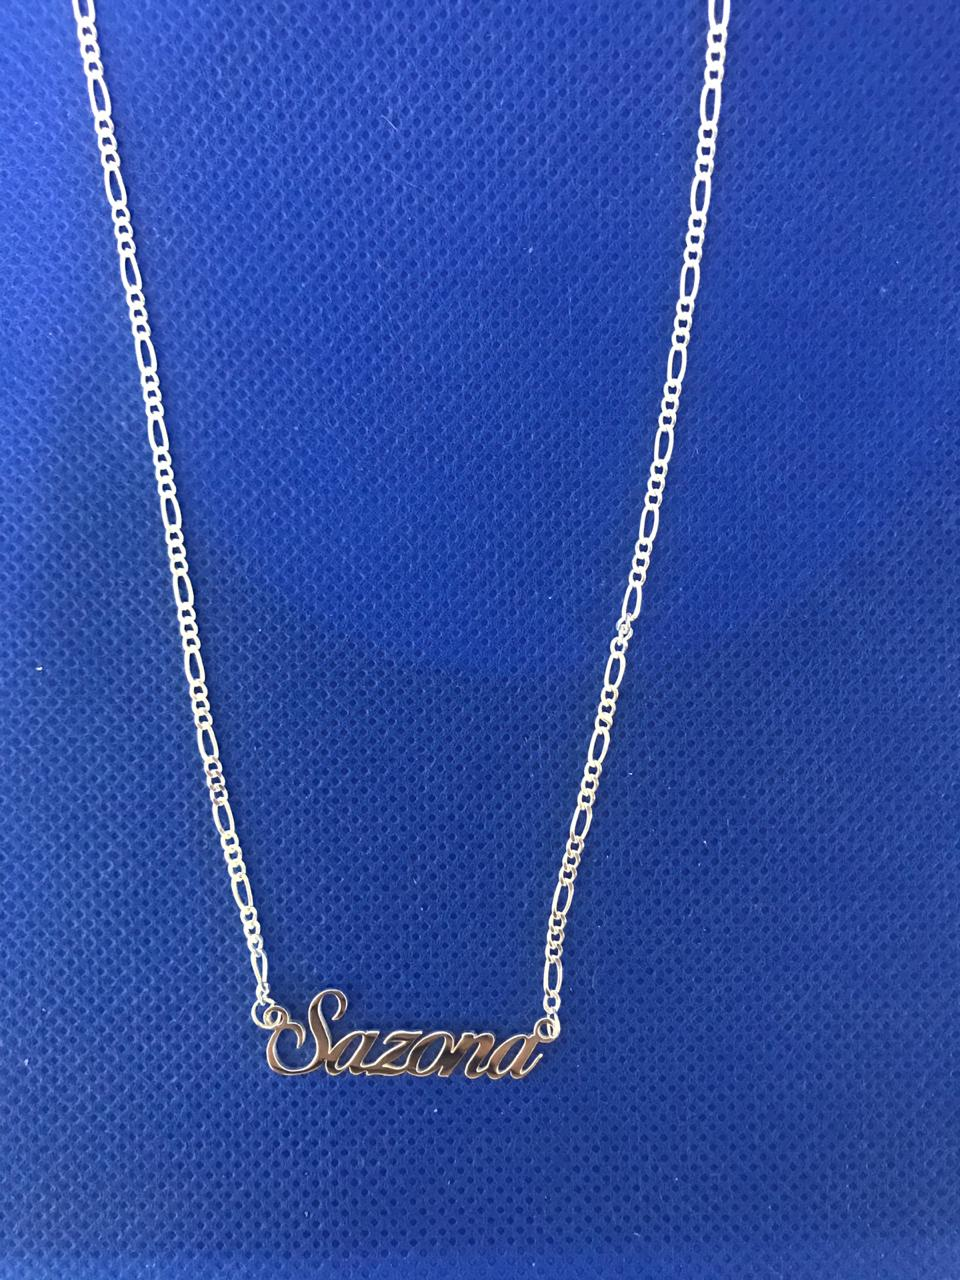 SAZONA TAG NECKLACE